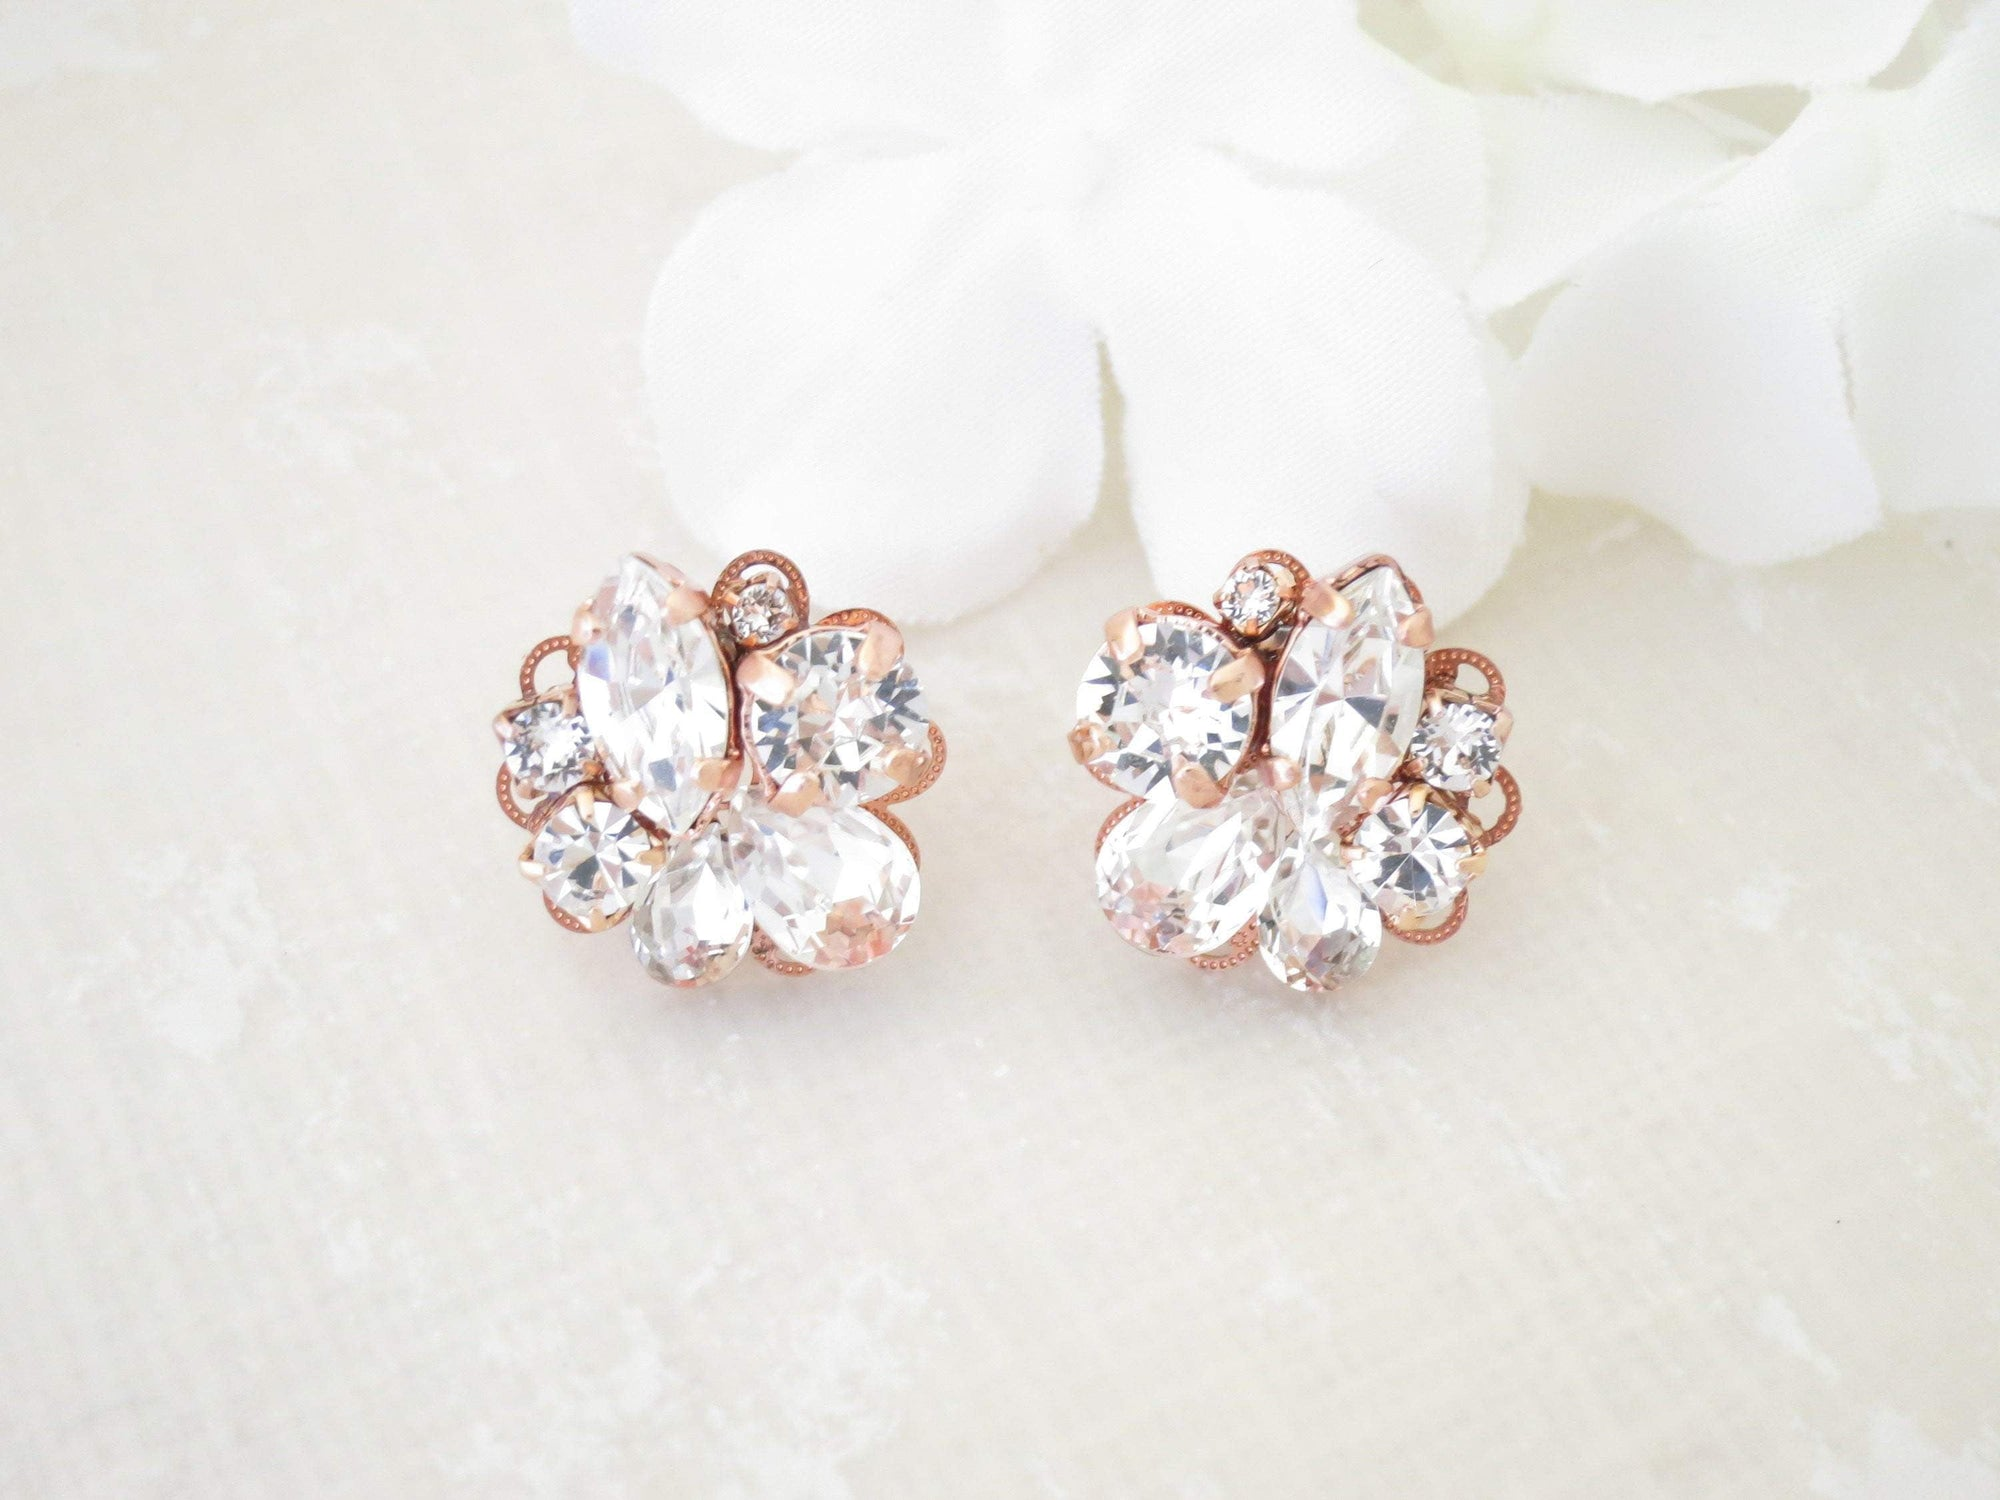 BEVERLY:  Rose Gold Crystal Cluster Earrings - BlingBaddaBoom - Minimalist, Vintage, Modern Wedding and Bridal Jewelry